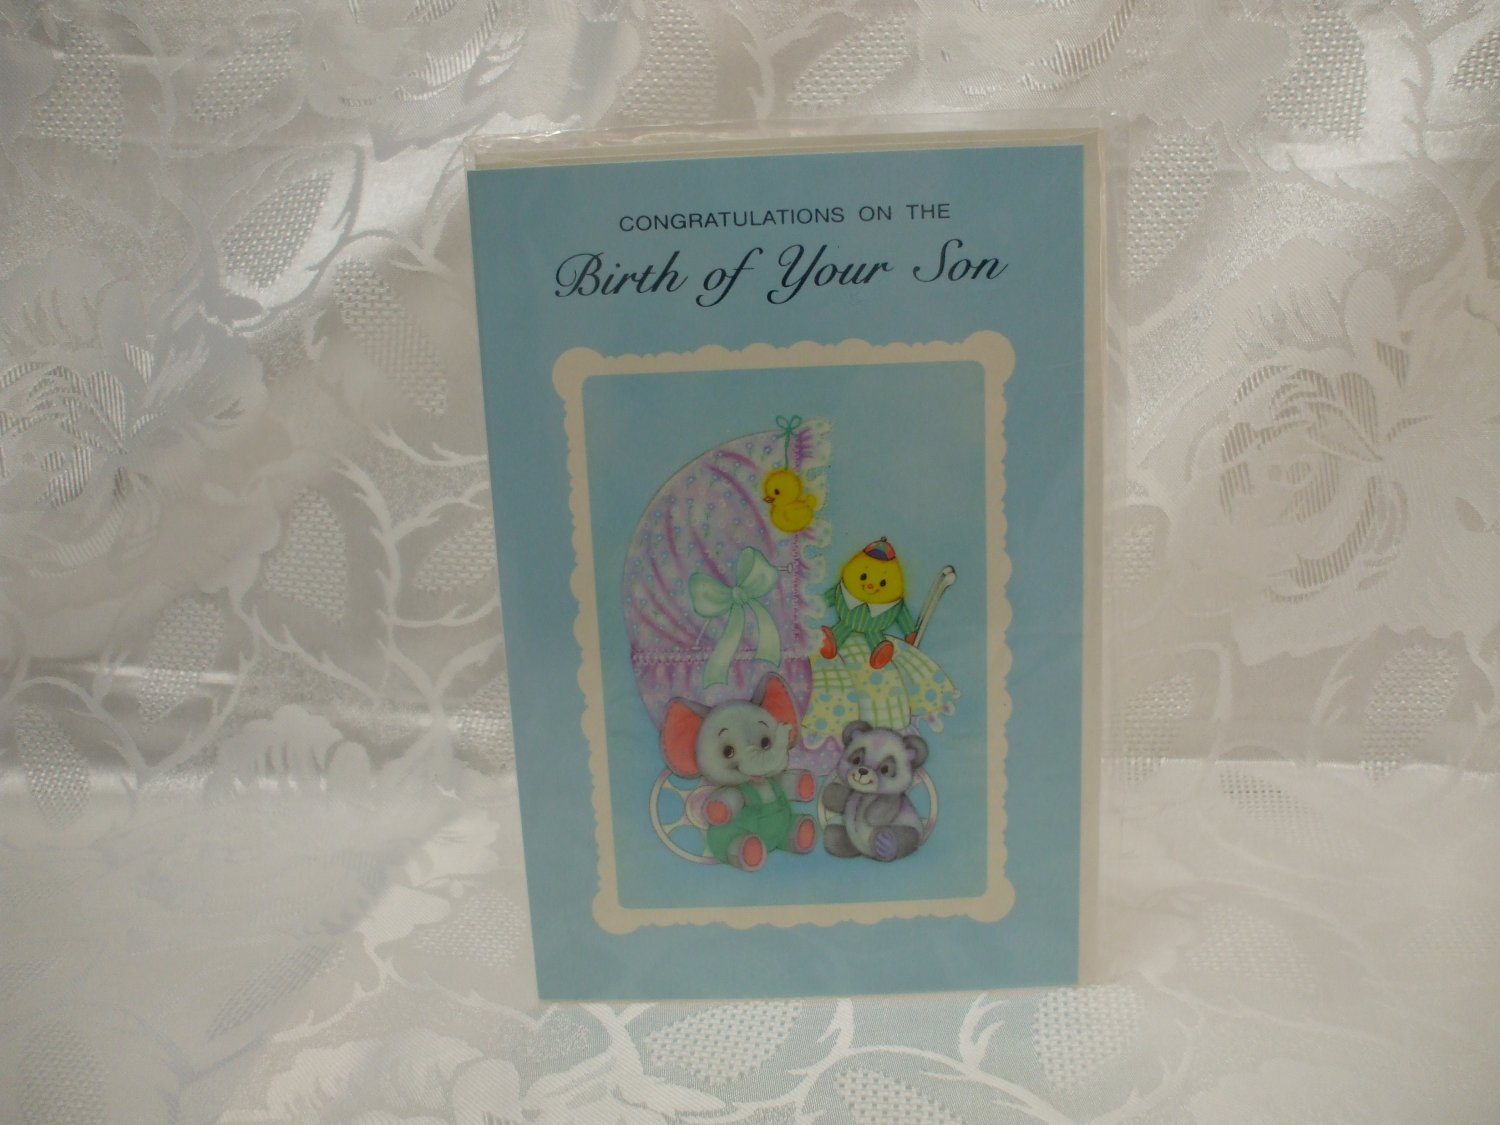 Congratulations On The Birth Of Your Son Card And Envelope Sealed